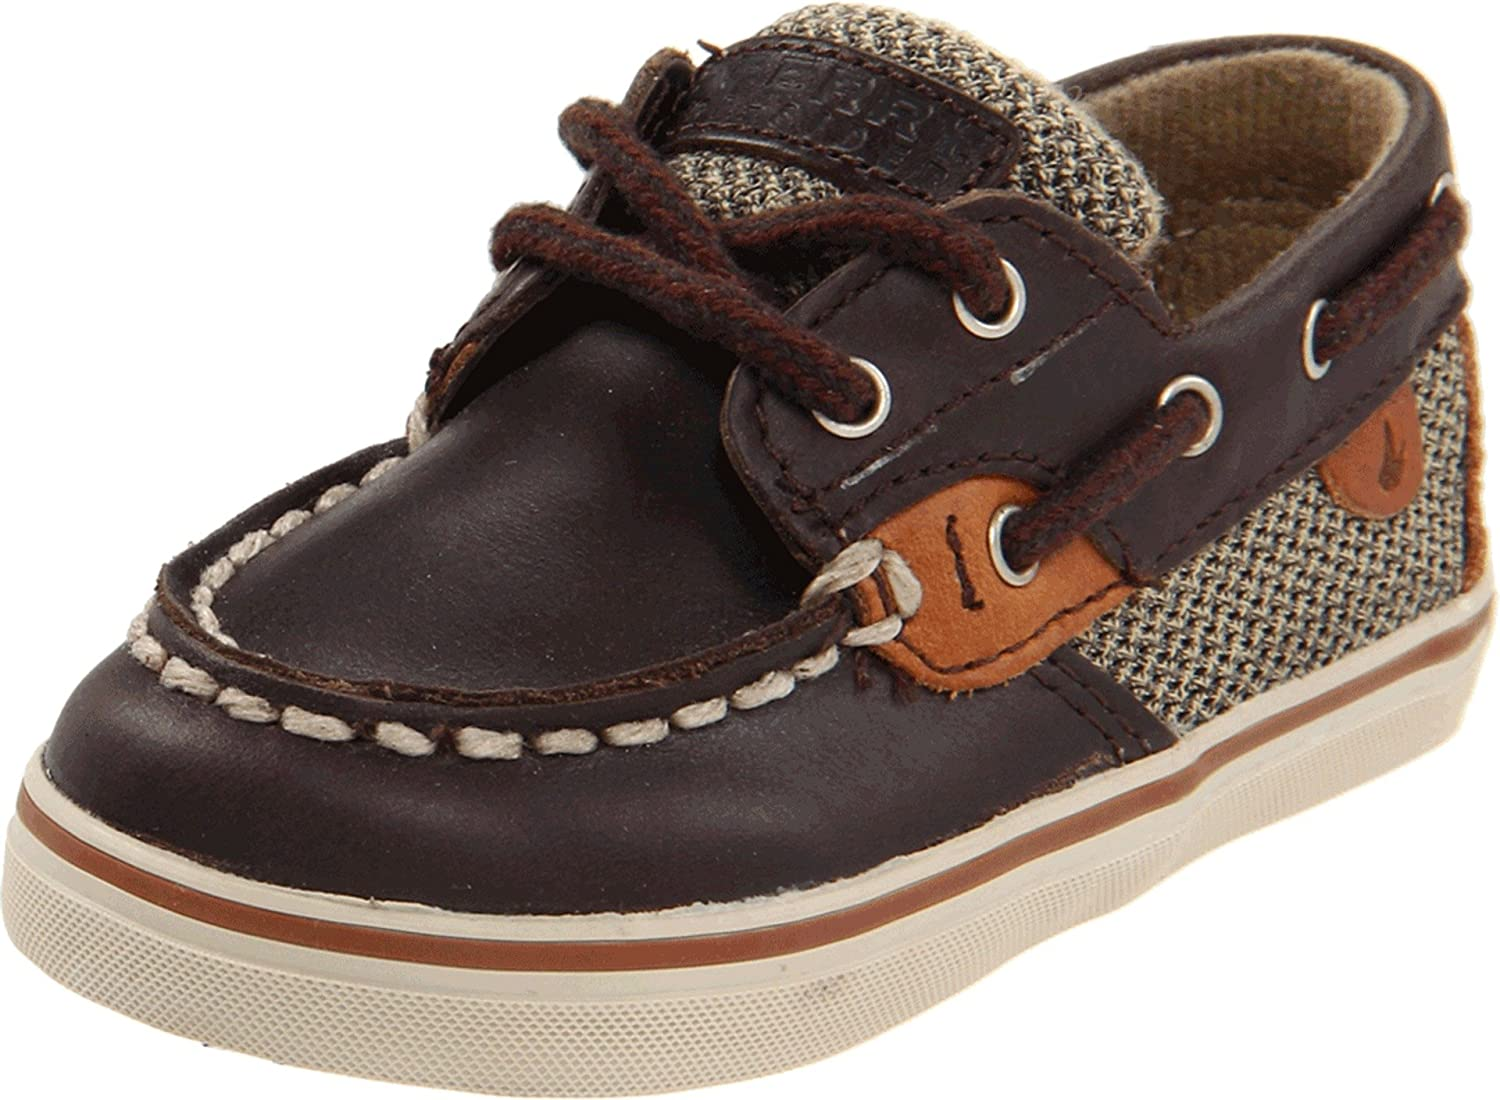 Cheap Boat Shoes: Cute little boat shoes for kids - Sperry ...